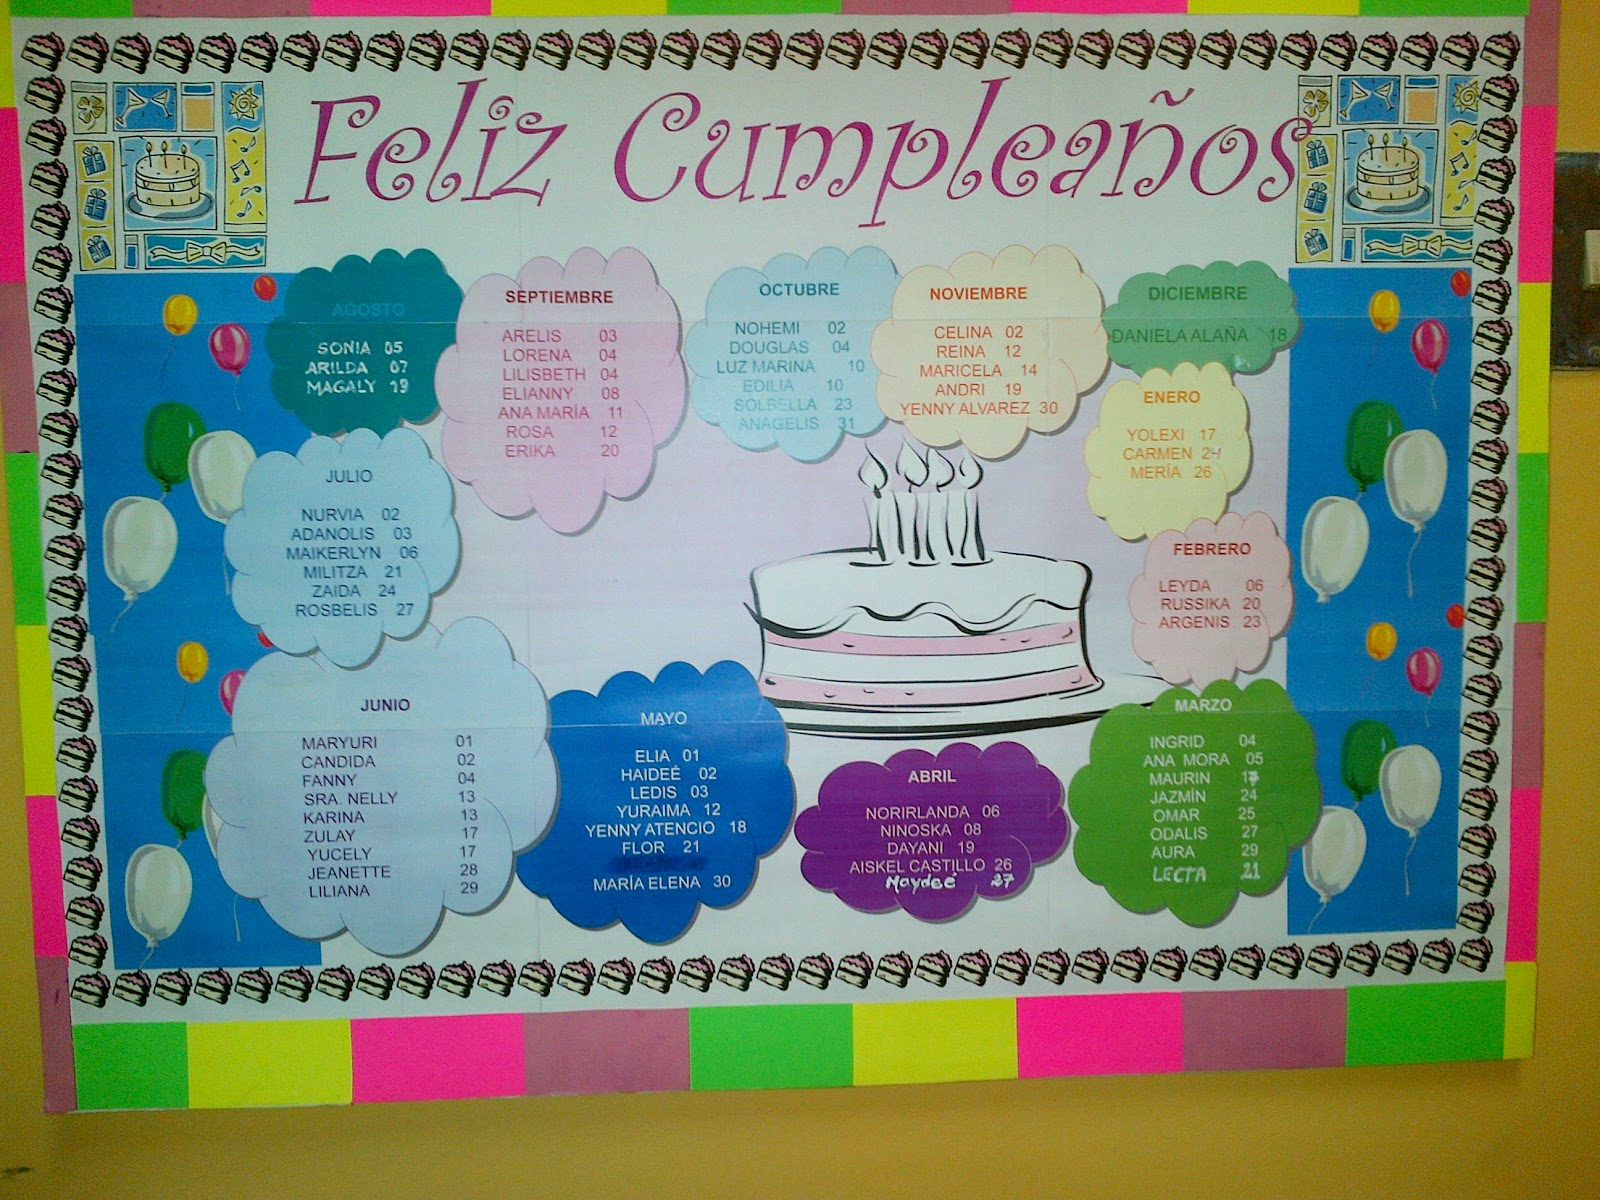 Carteleras Educativas 2